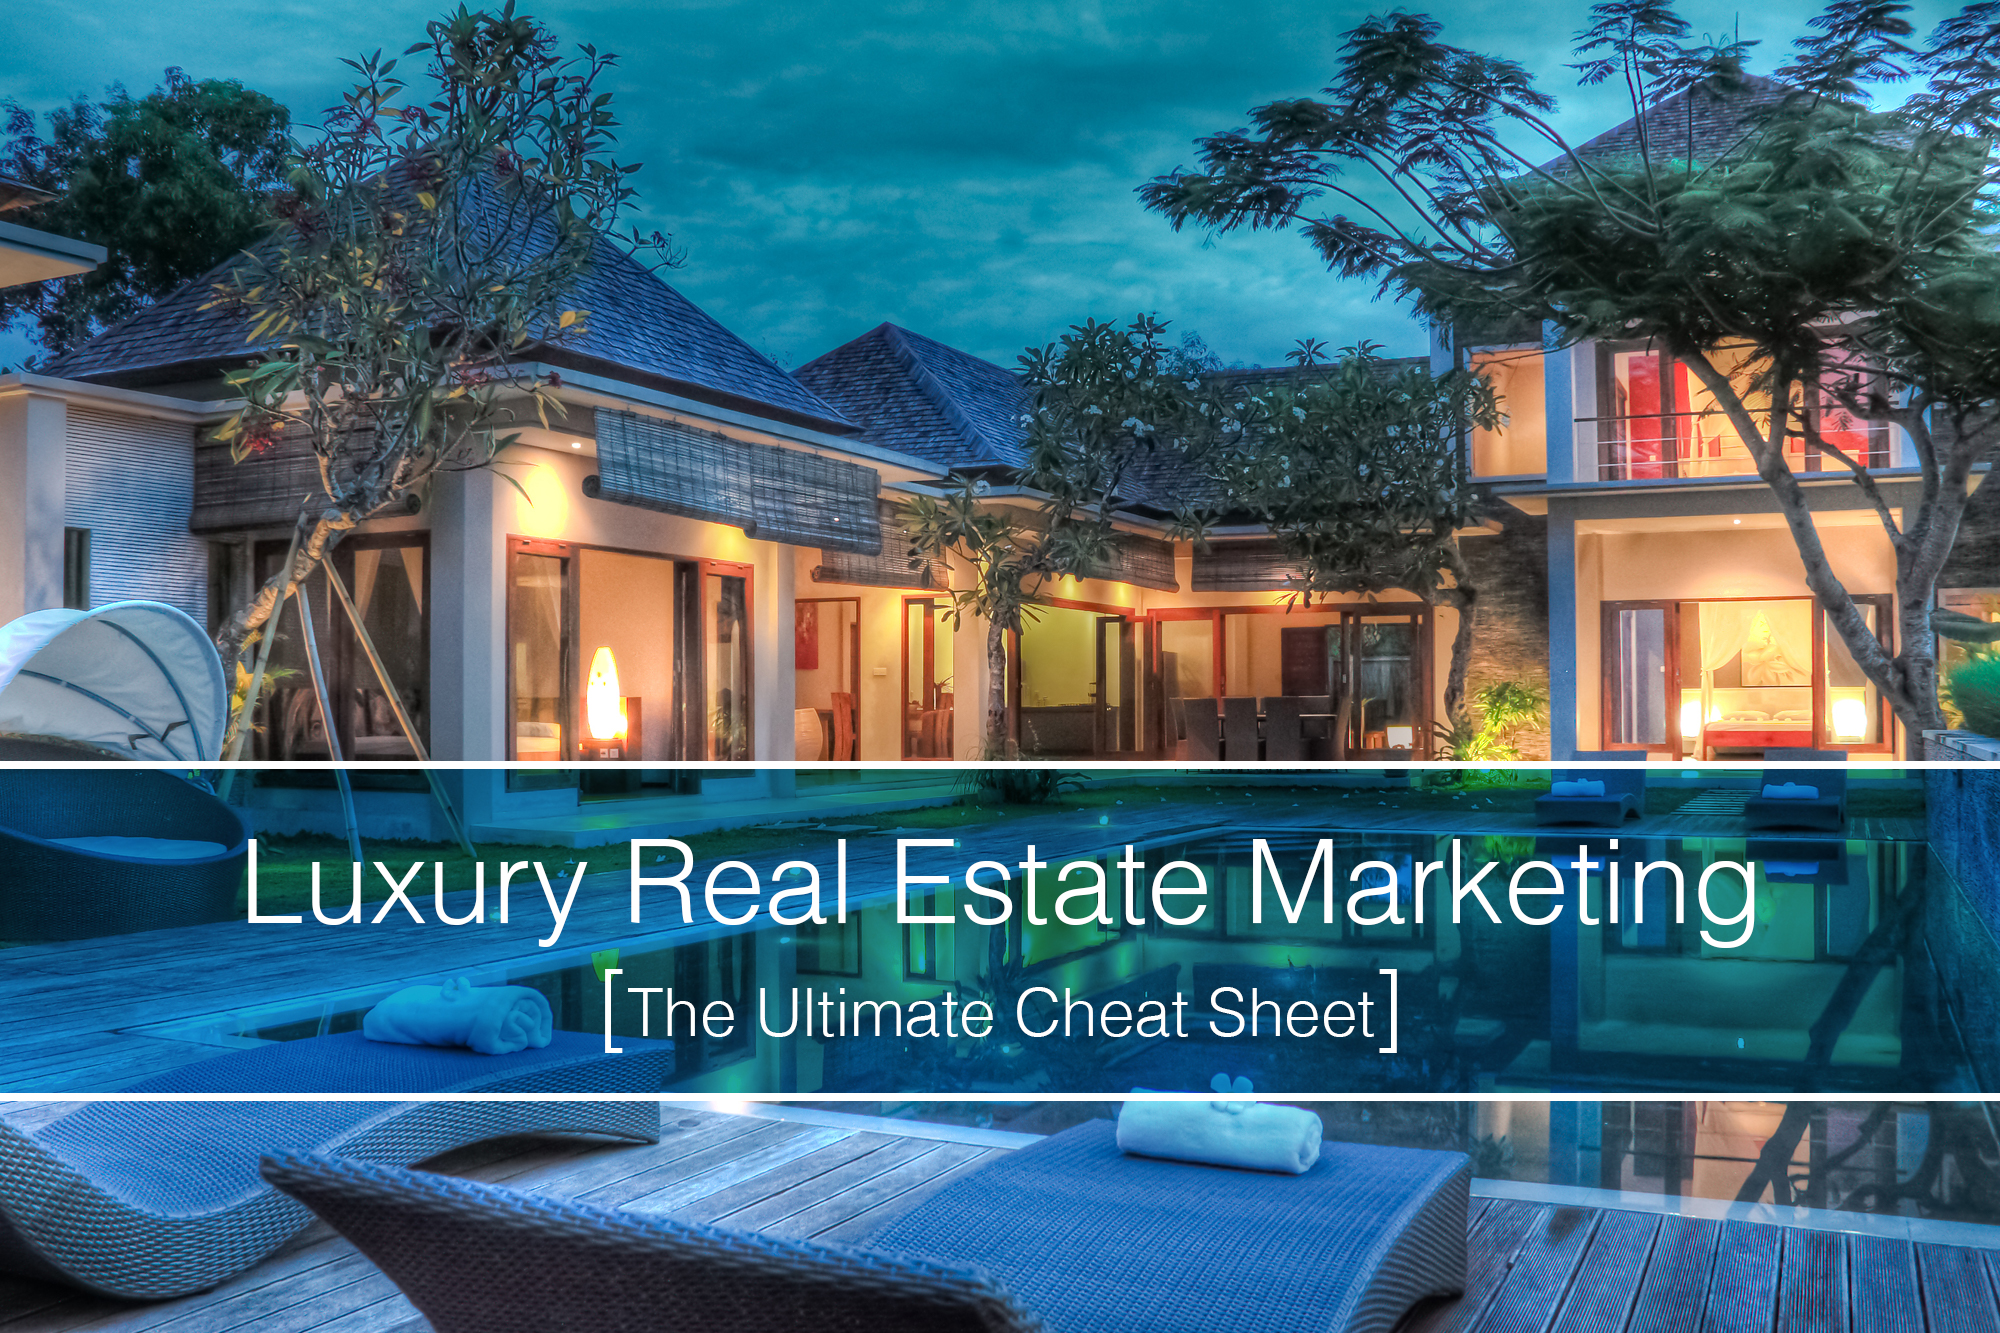 The Ultimate Cheat Sheet for Luxury Real Estate Marketing